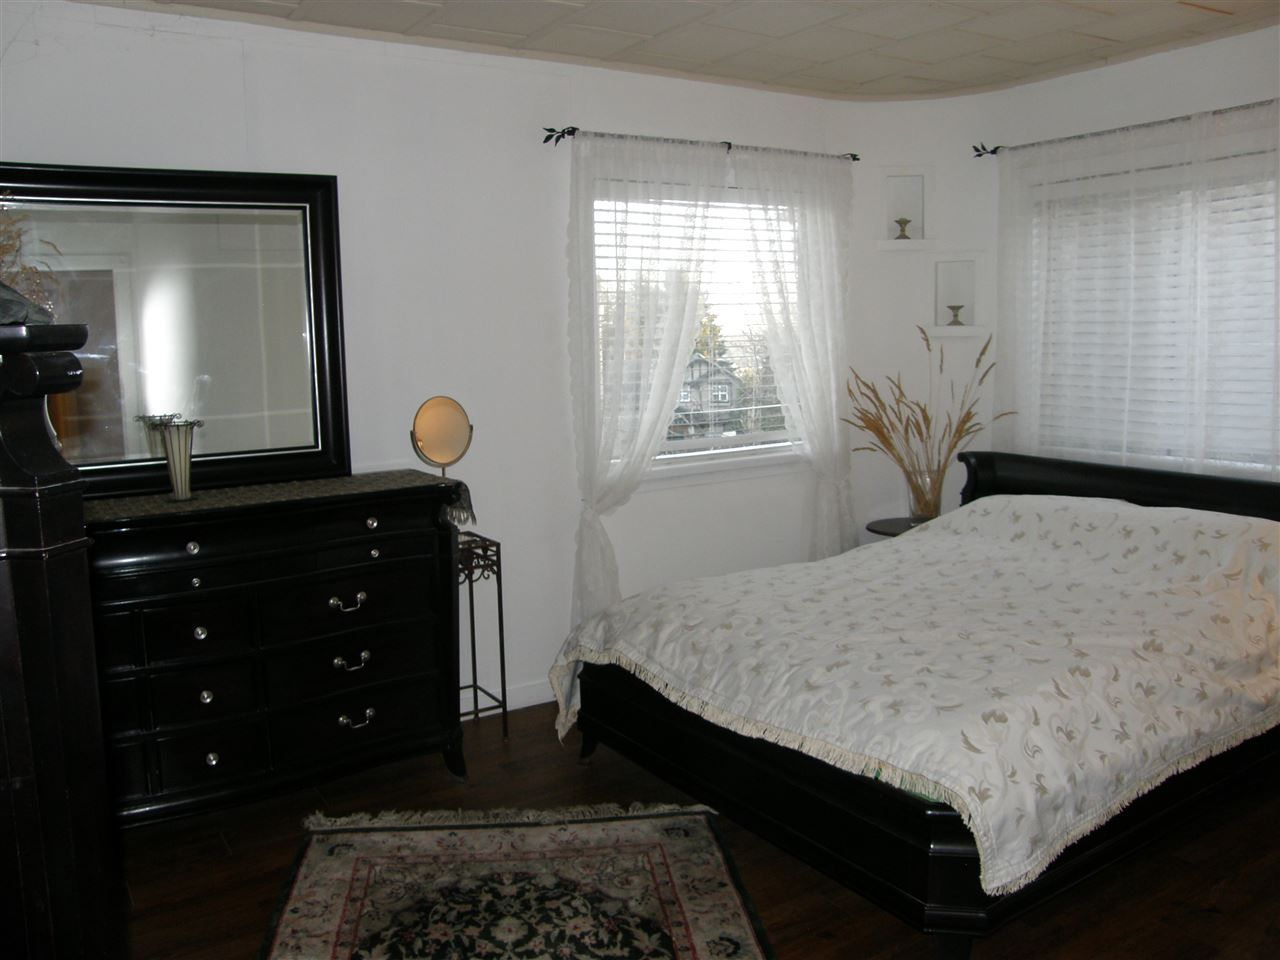 Photo 8: Photos: 788 CALVERHALL Street in North Vancouver: Calverhall House for sale : MLS® # R2245708